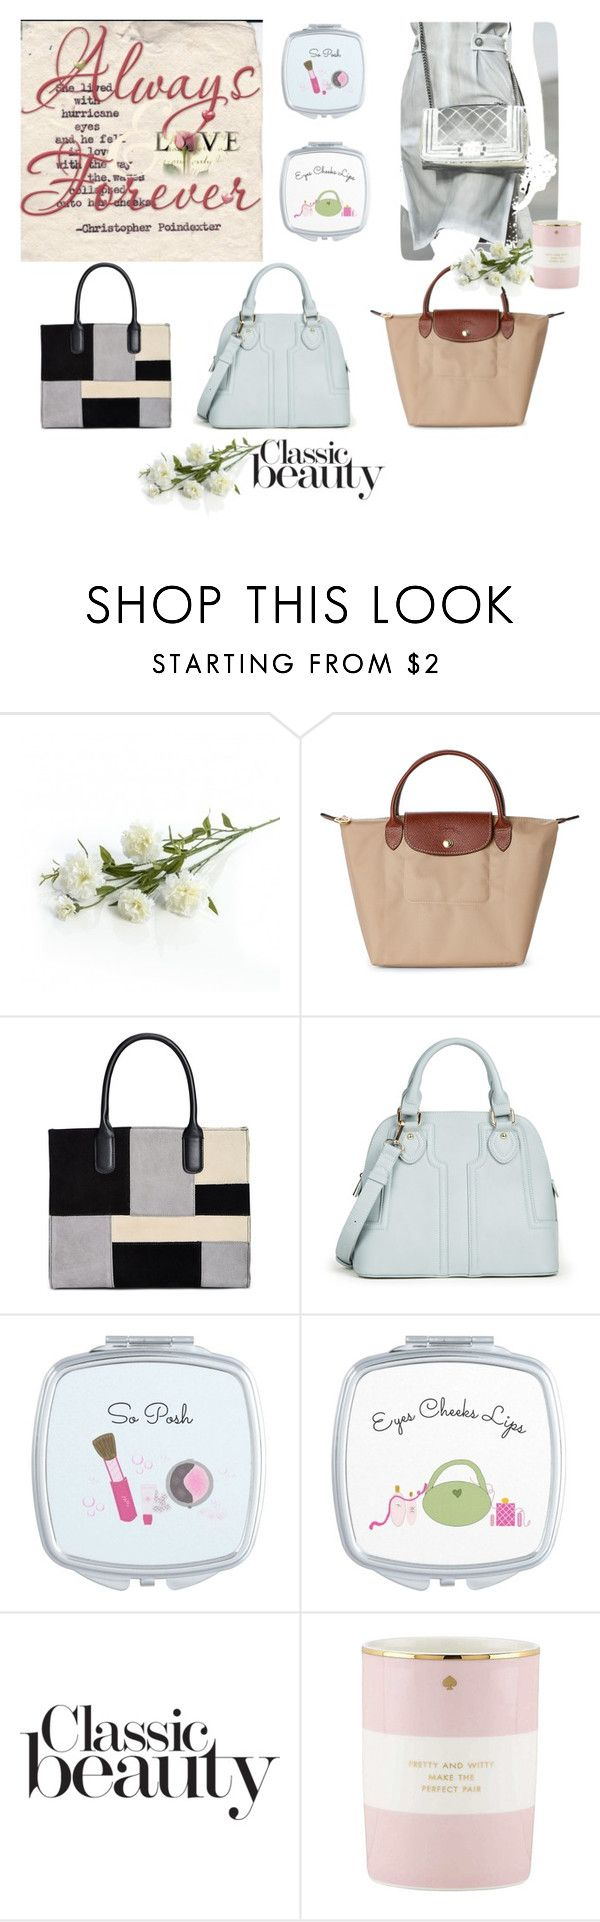 """Satchels"" by fit4you on Polyvore featuring Longchamp, Giani Bernini, Sole Society, Kate Spade, satchels, handbags, compactmirrors and springpurses"